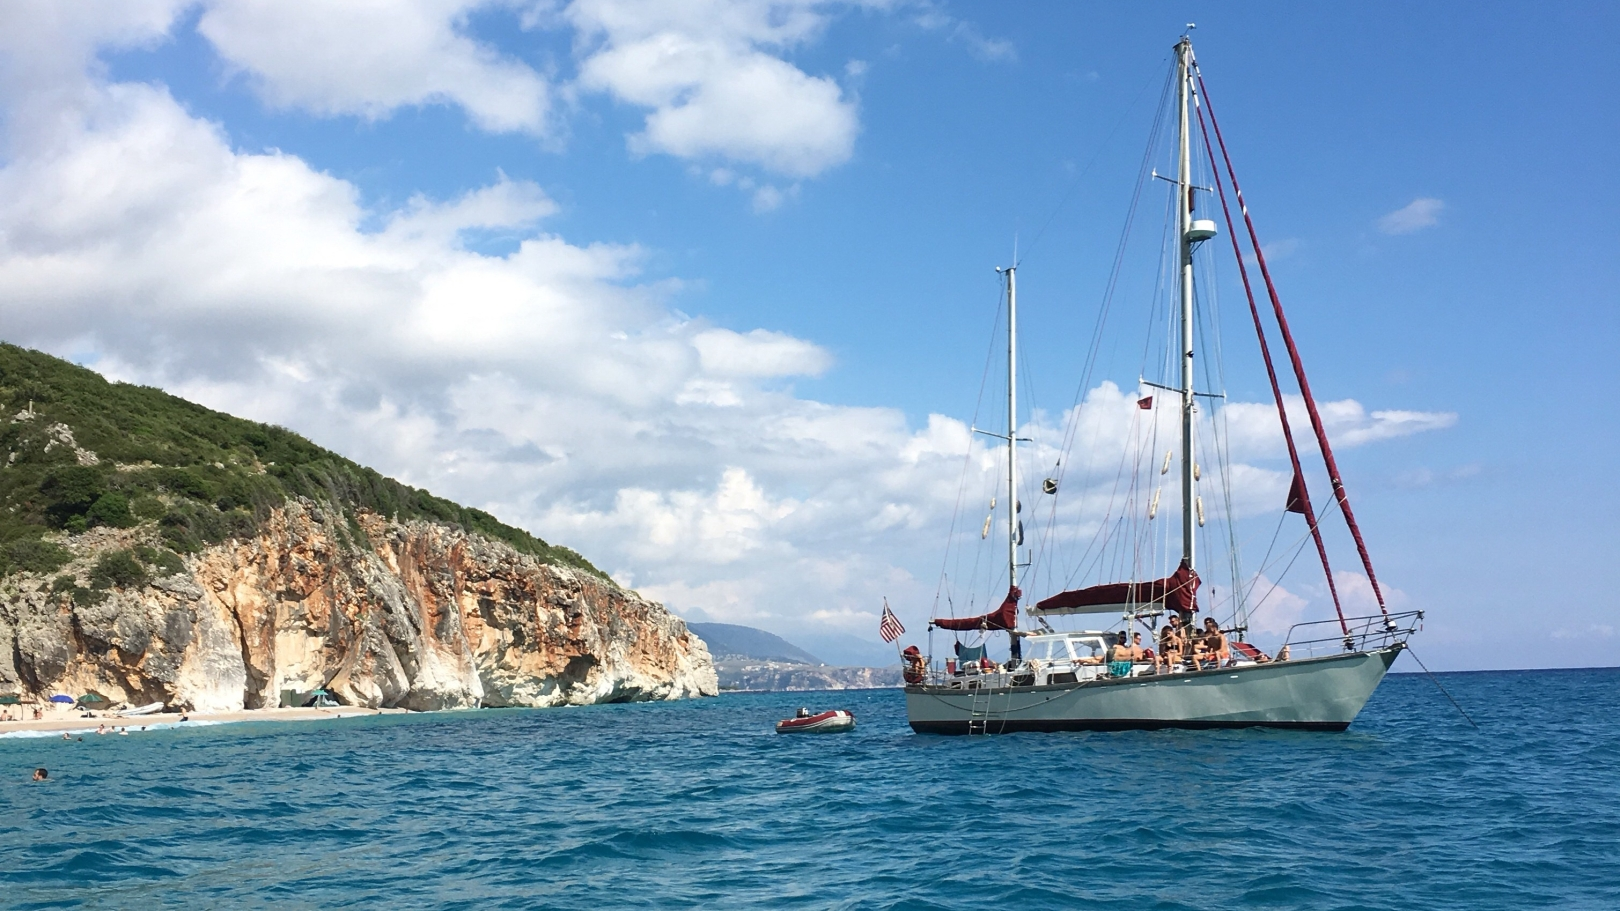 sailing boat off the coast of Albania